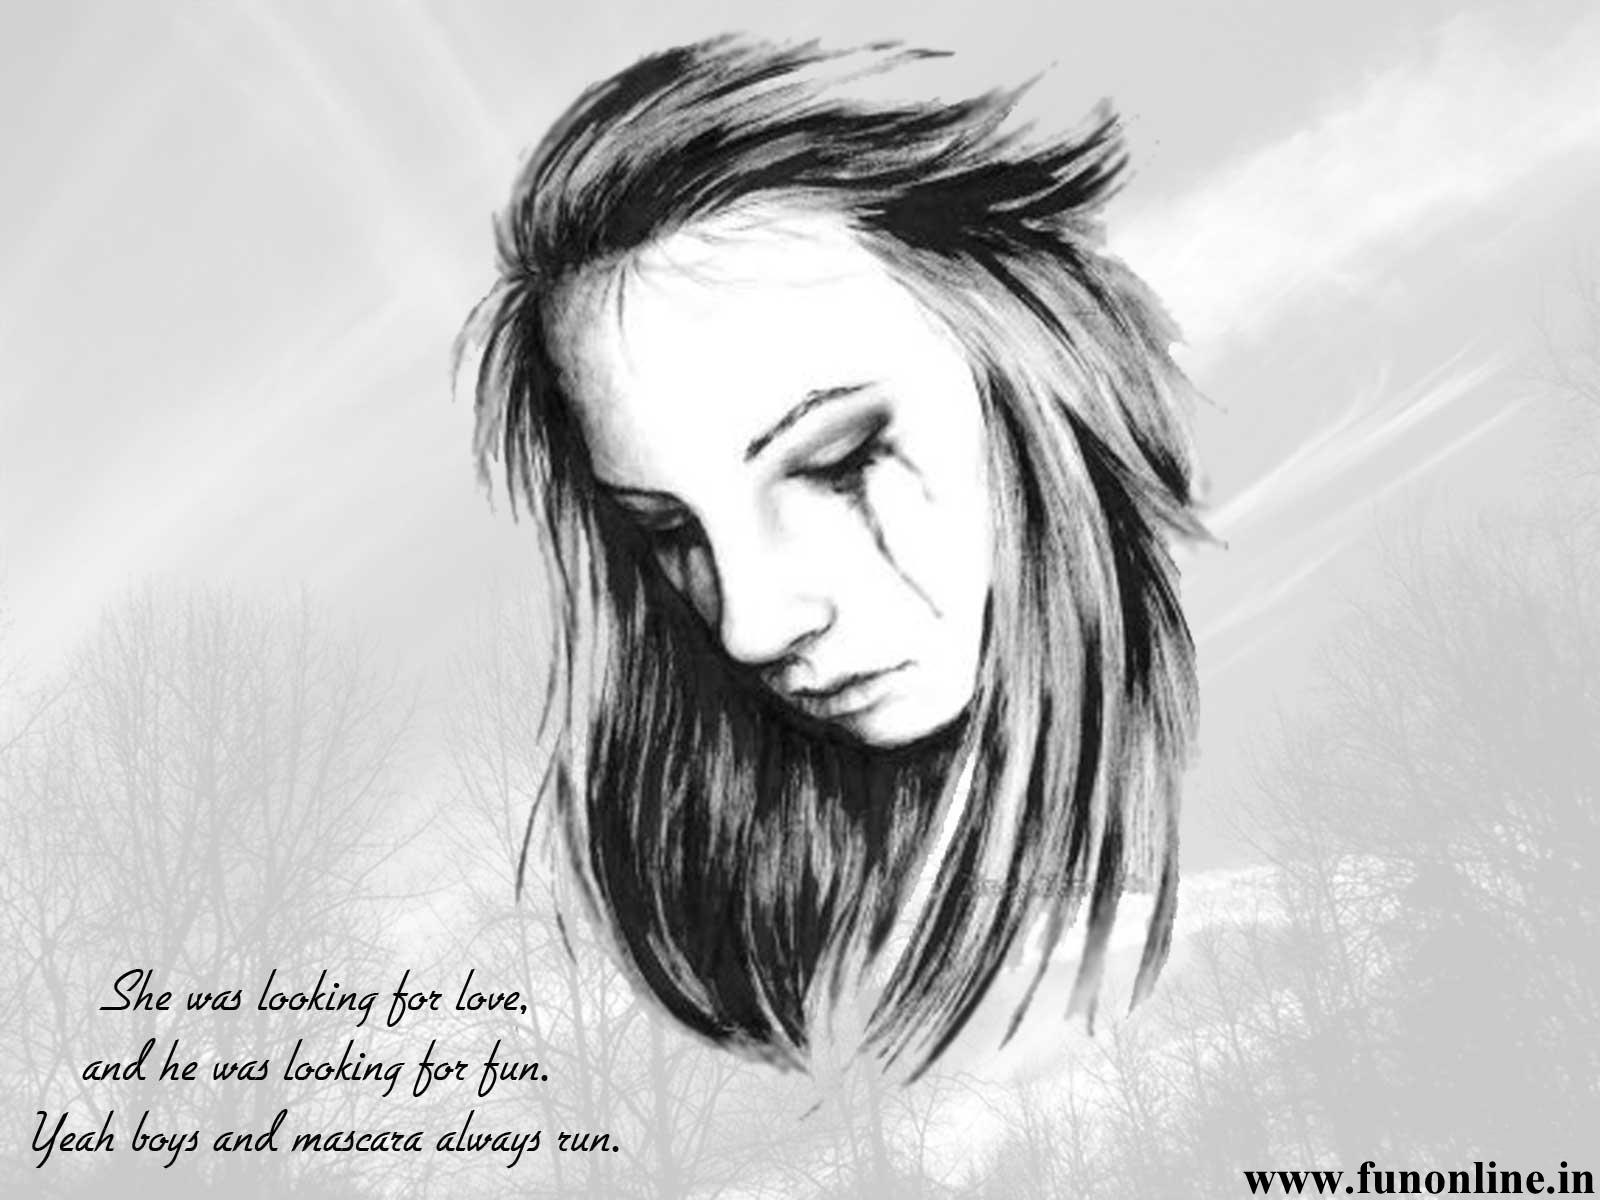 Love Wallpaper In Drawing : Sad Love Drawings 18 Widescreen Wallpaper - Hdlovewall.com